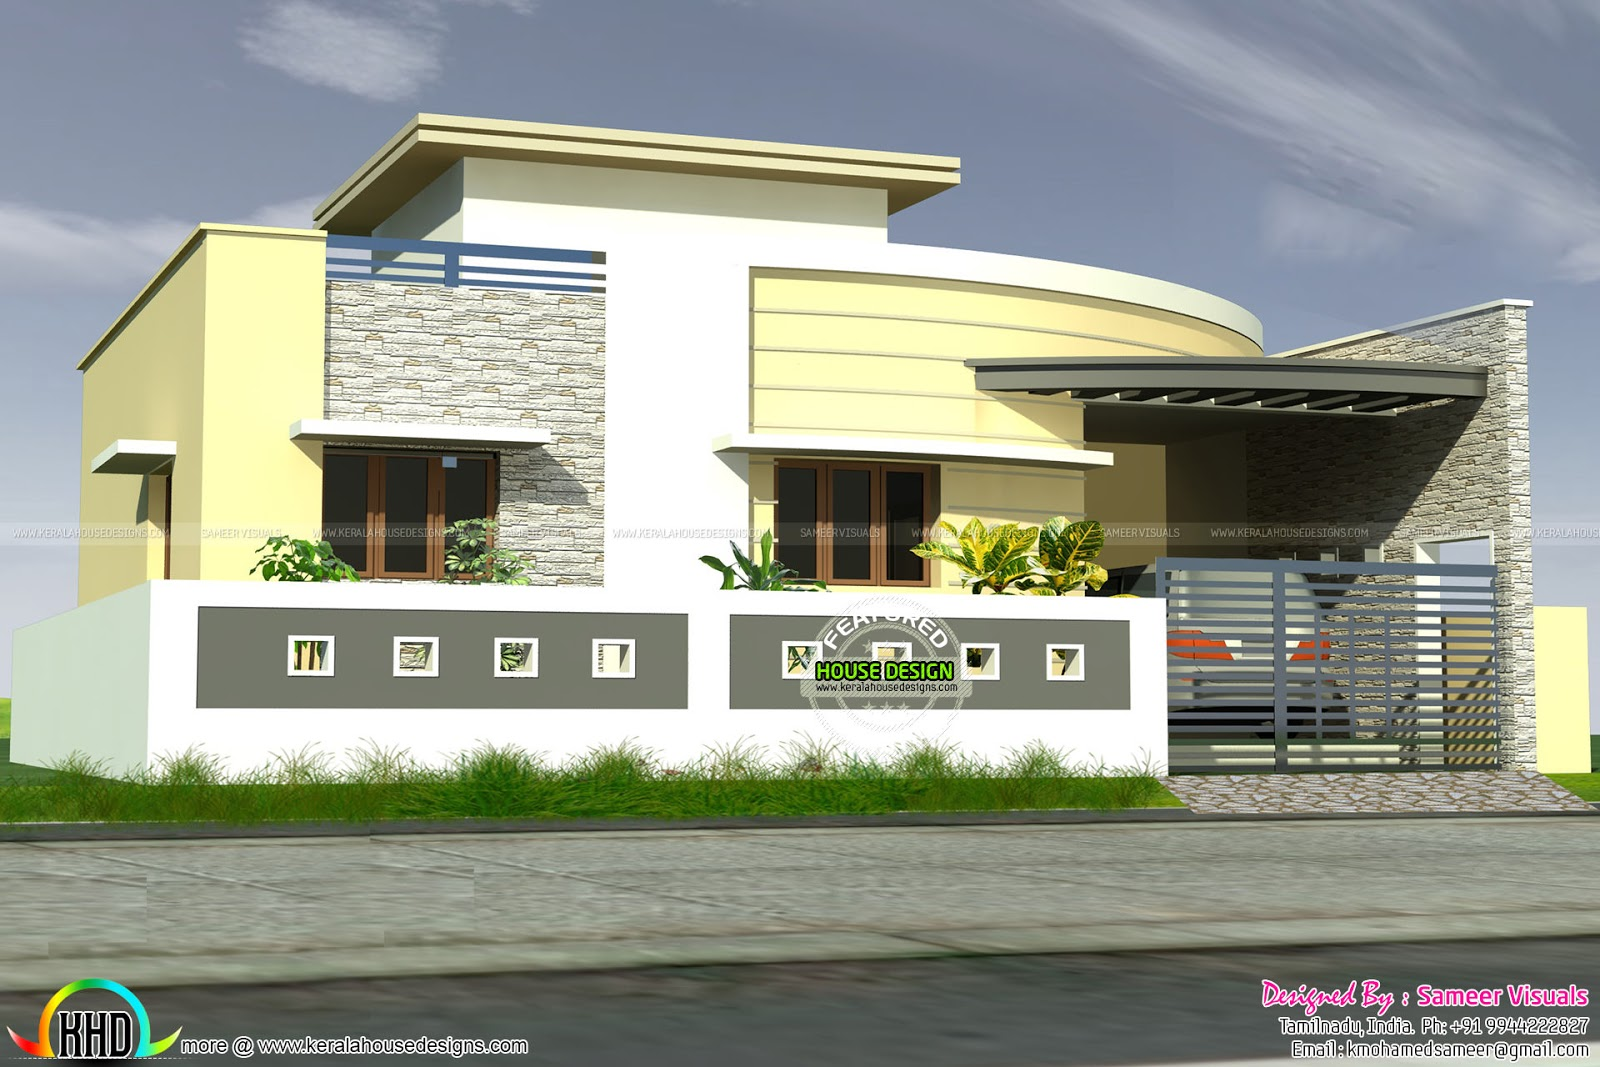 Design style modern single floor house facilities view full details